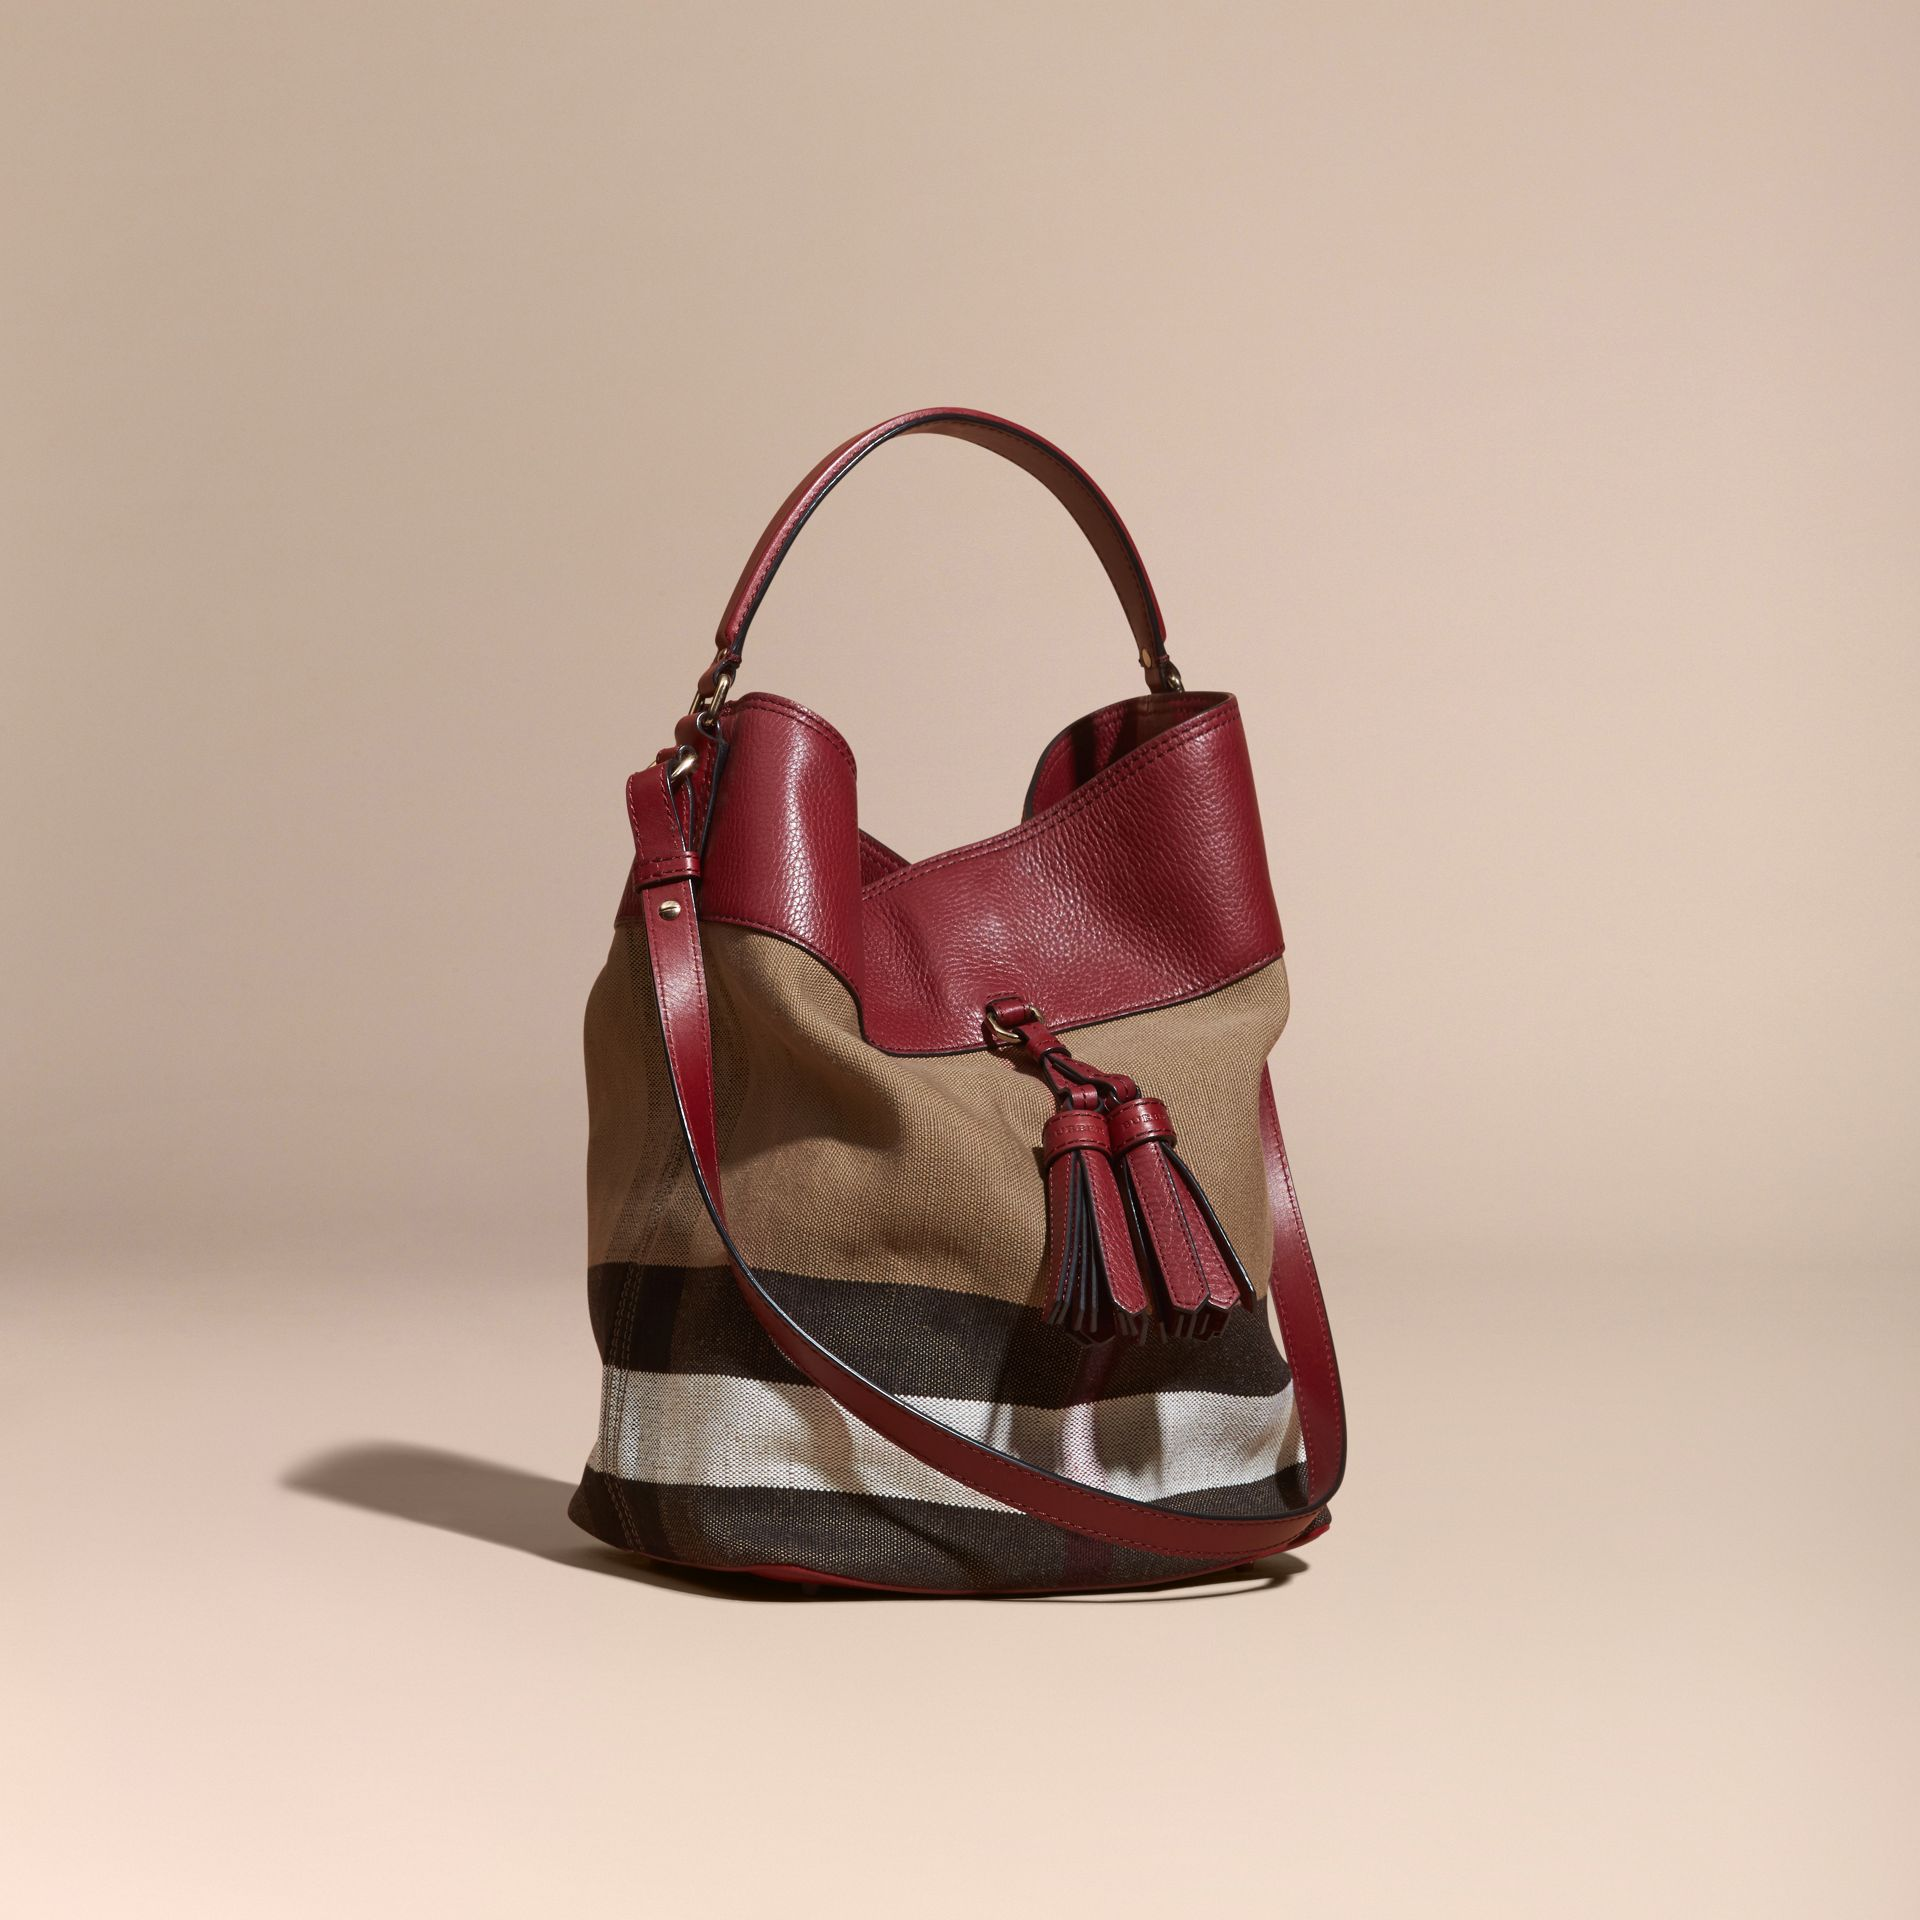 Burgundy red The Medium Ashby in Canvas Check and Leather Burgundy Red - gallery image 1